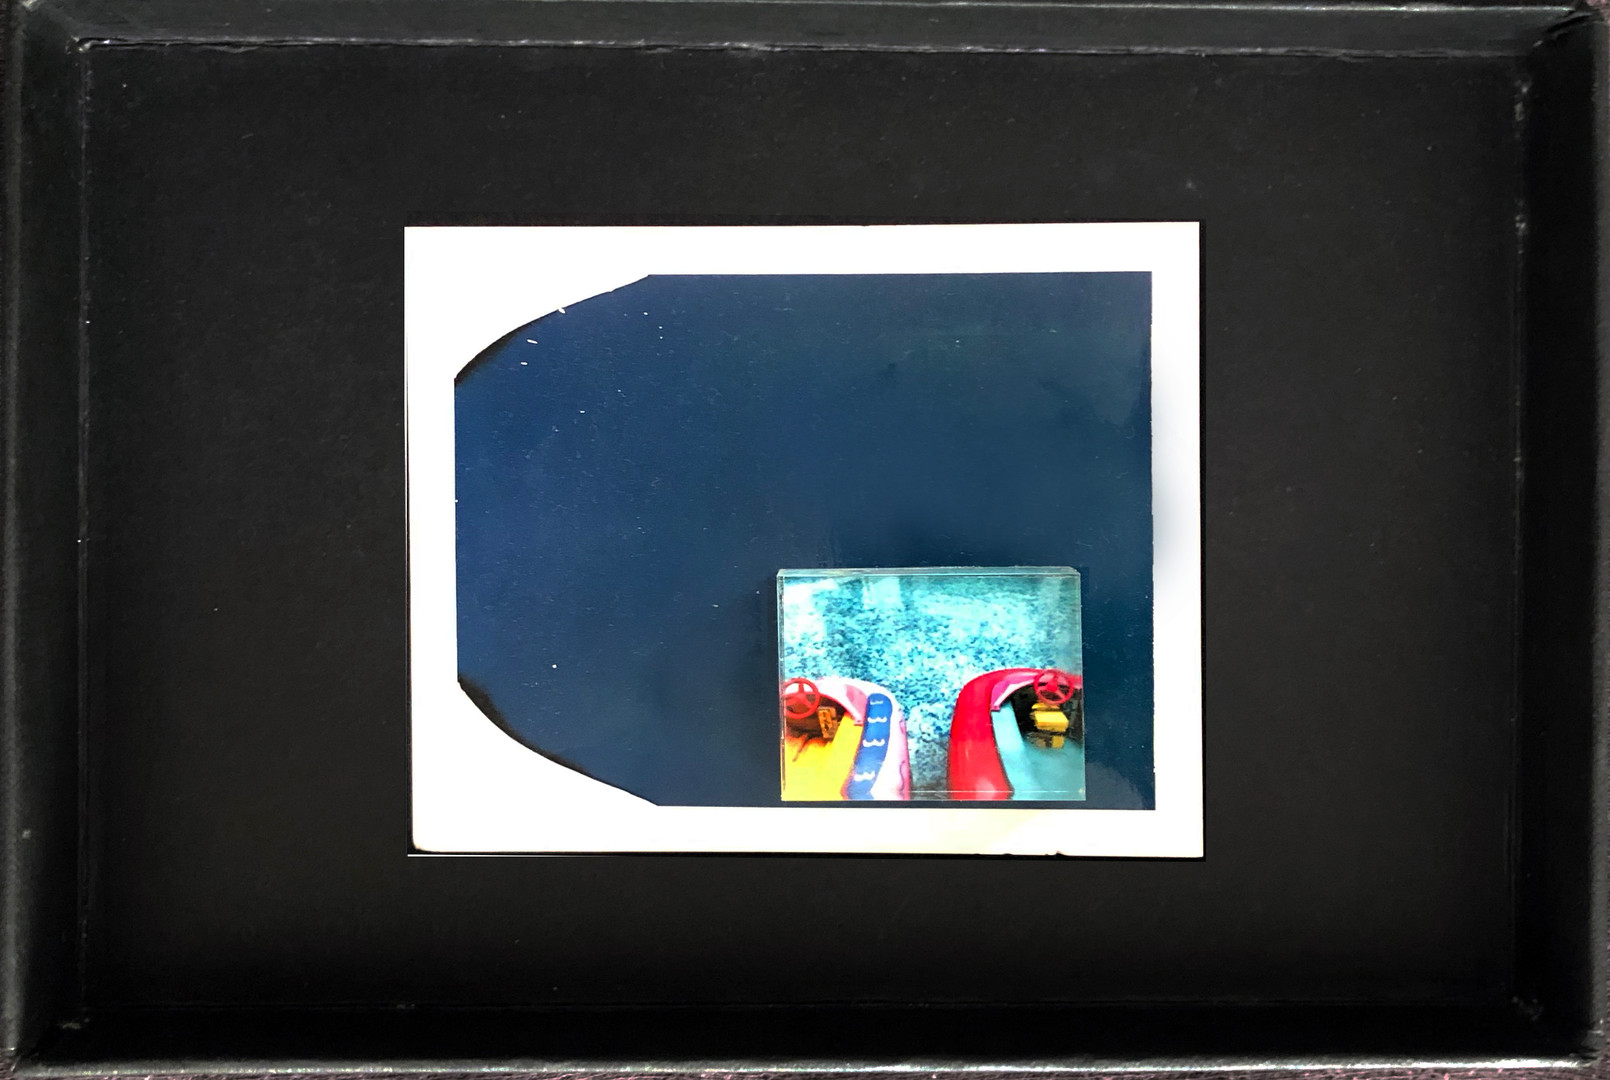 """Series X-Pola """"Rubber boats"""" 2019 8/10cm mounted Plexiglass on Polaroid Edition 1/1 NIS 1,000 per object Sold out"""